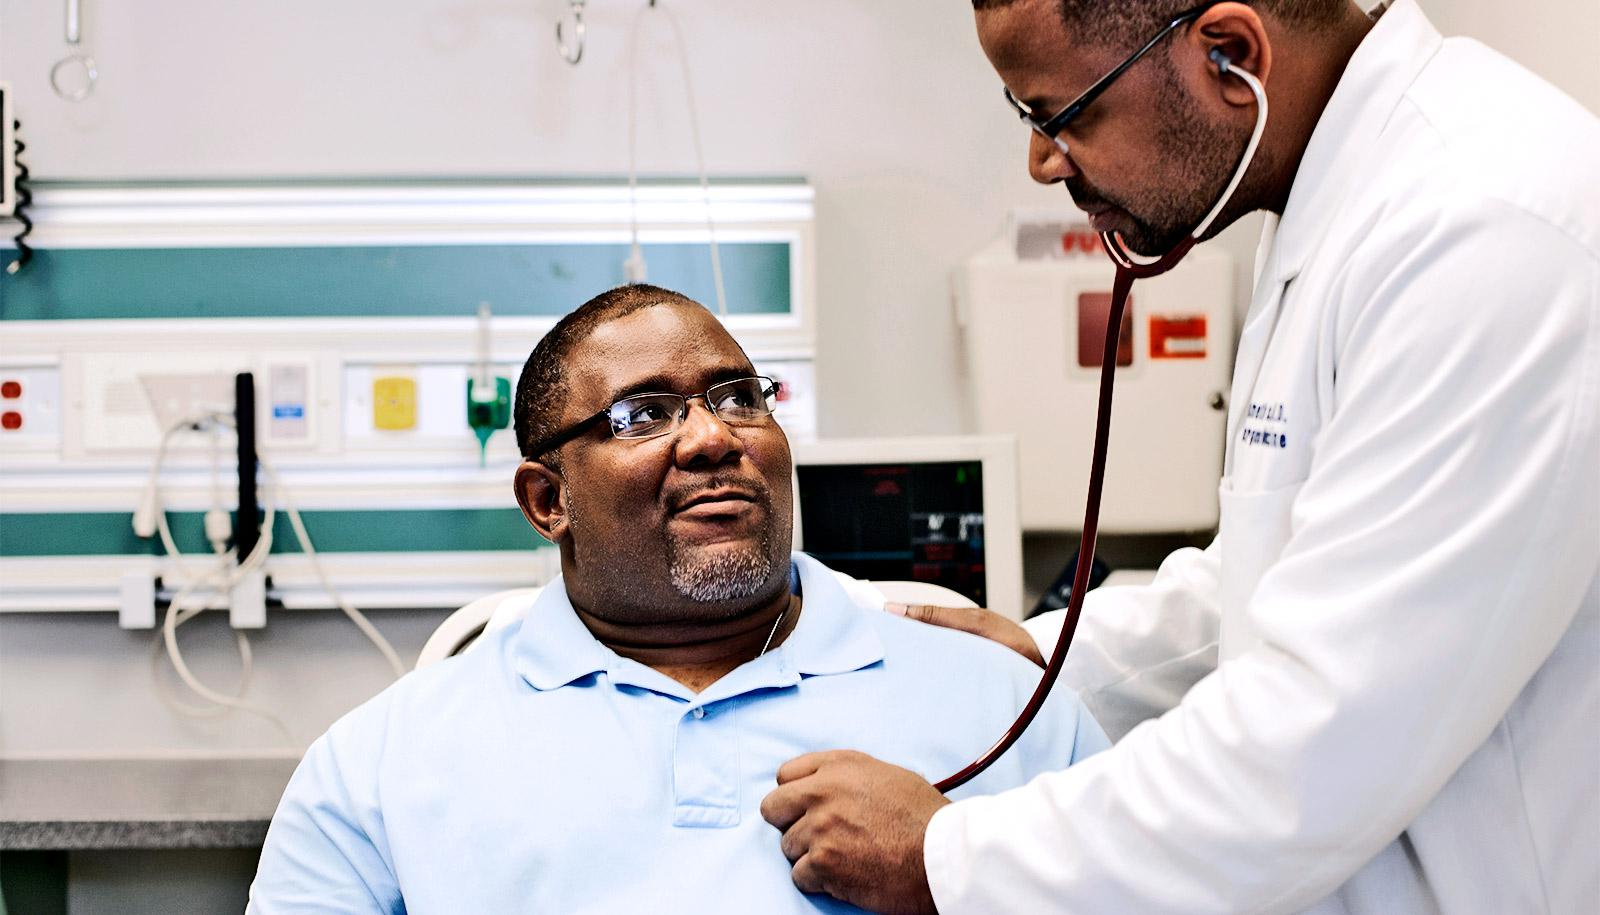 A doctor checks a man's heartbeat with a stethoscope